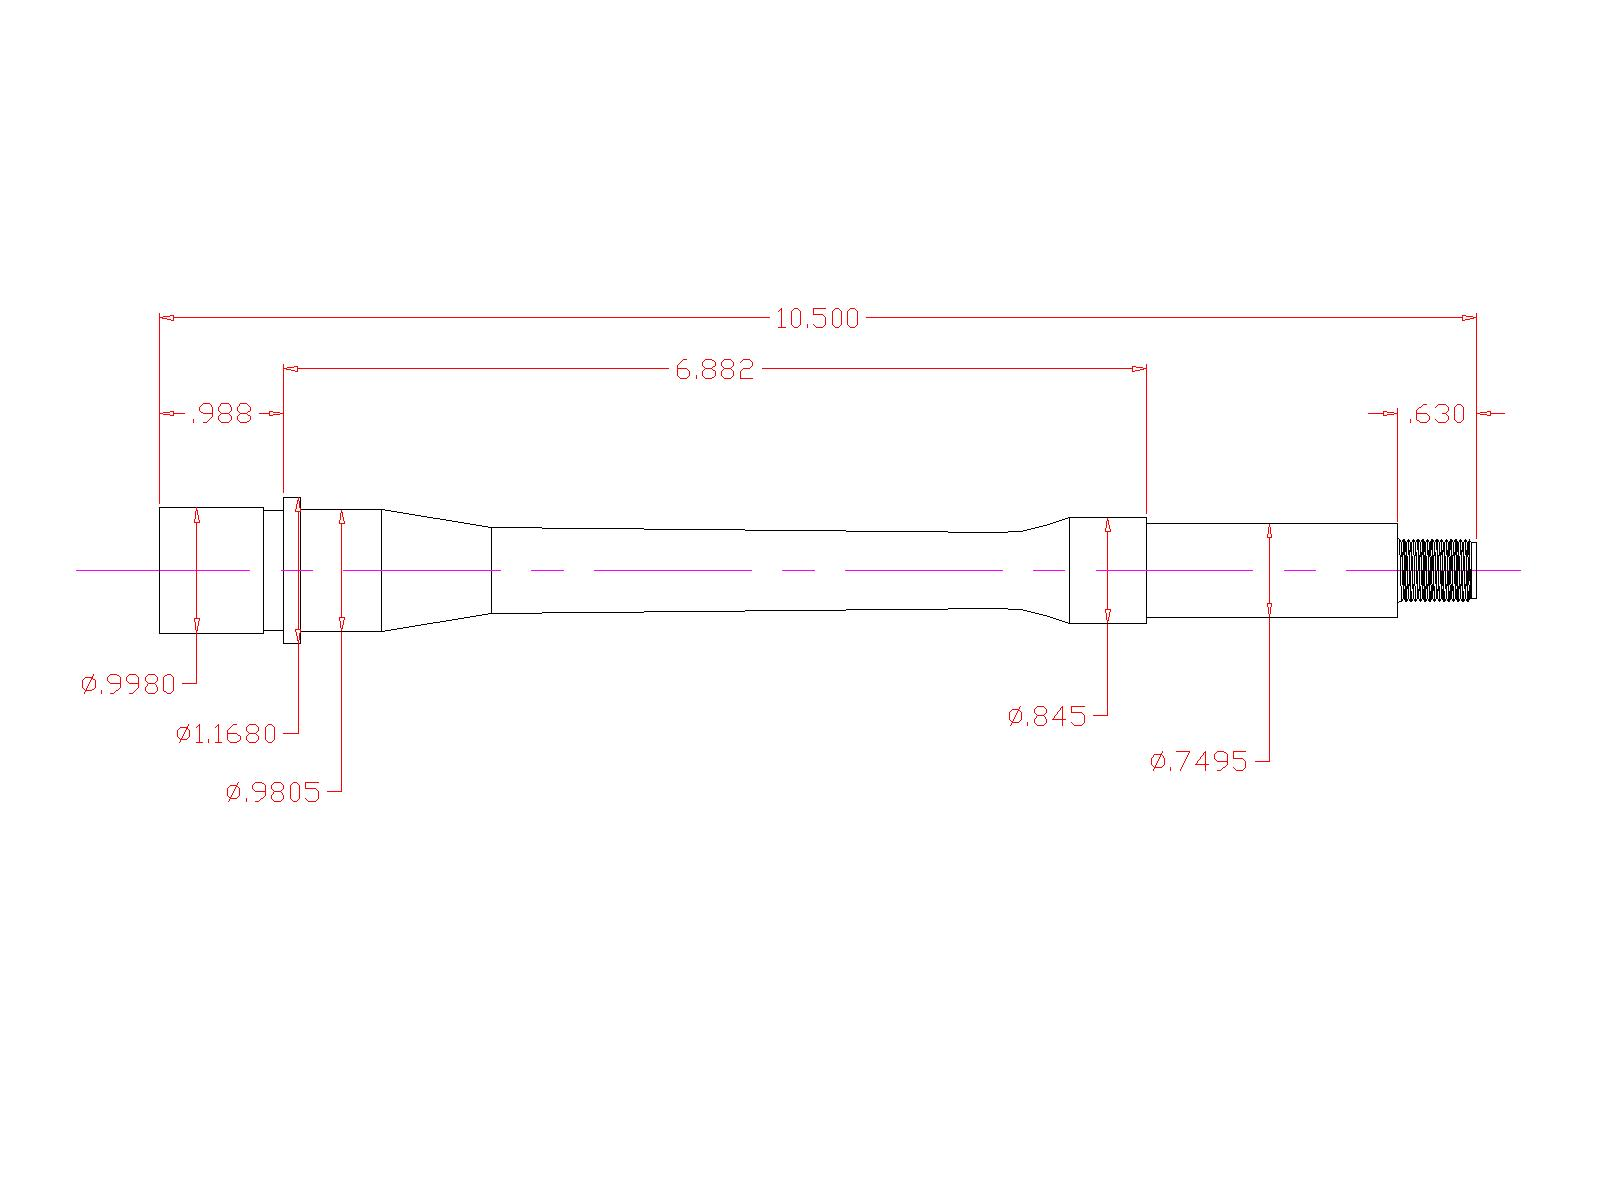 Gm M4 9 105 9mm Ar15 Barrel Green Mountain Rifle Co Schematic Black Nitride Coated Inside And Out For Enhanced Wear Resistance Extended Performance With A Full Auto Chamber Has Been Button Rifled